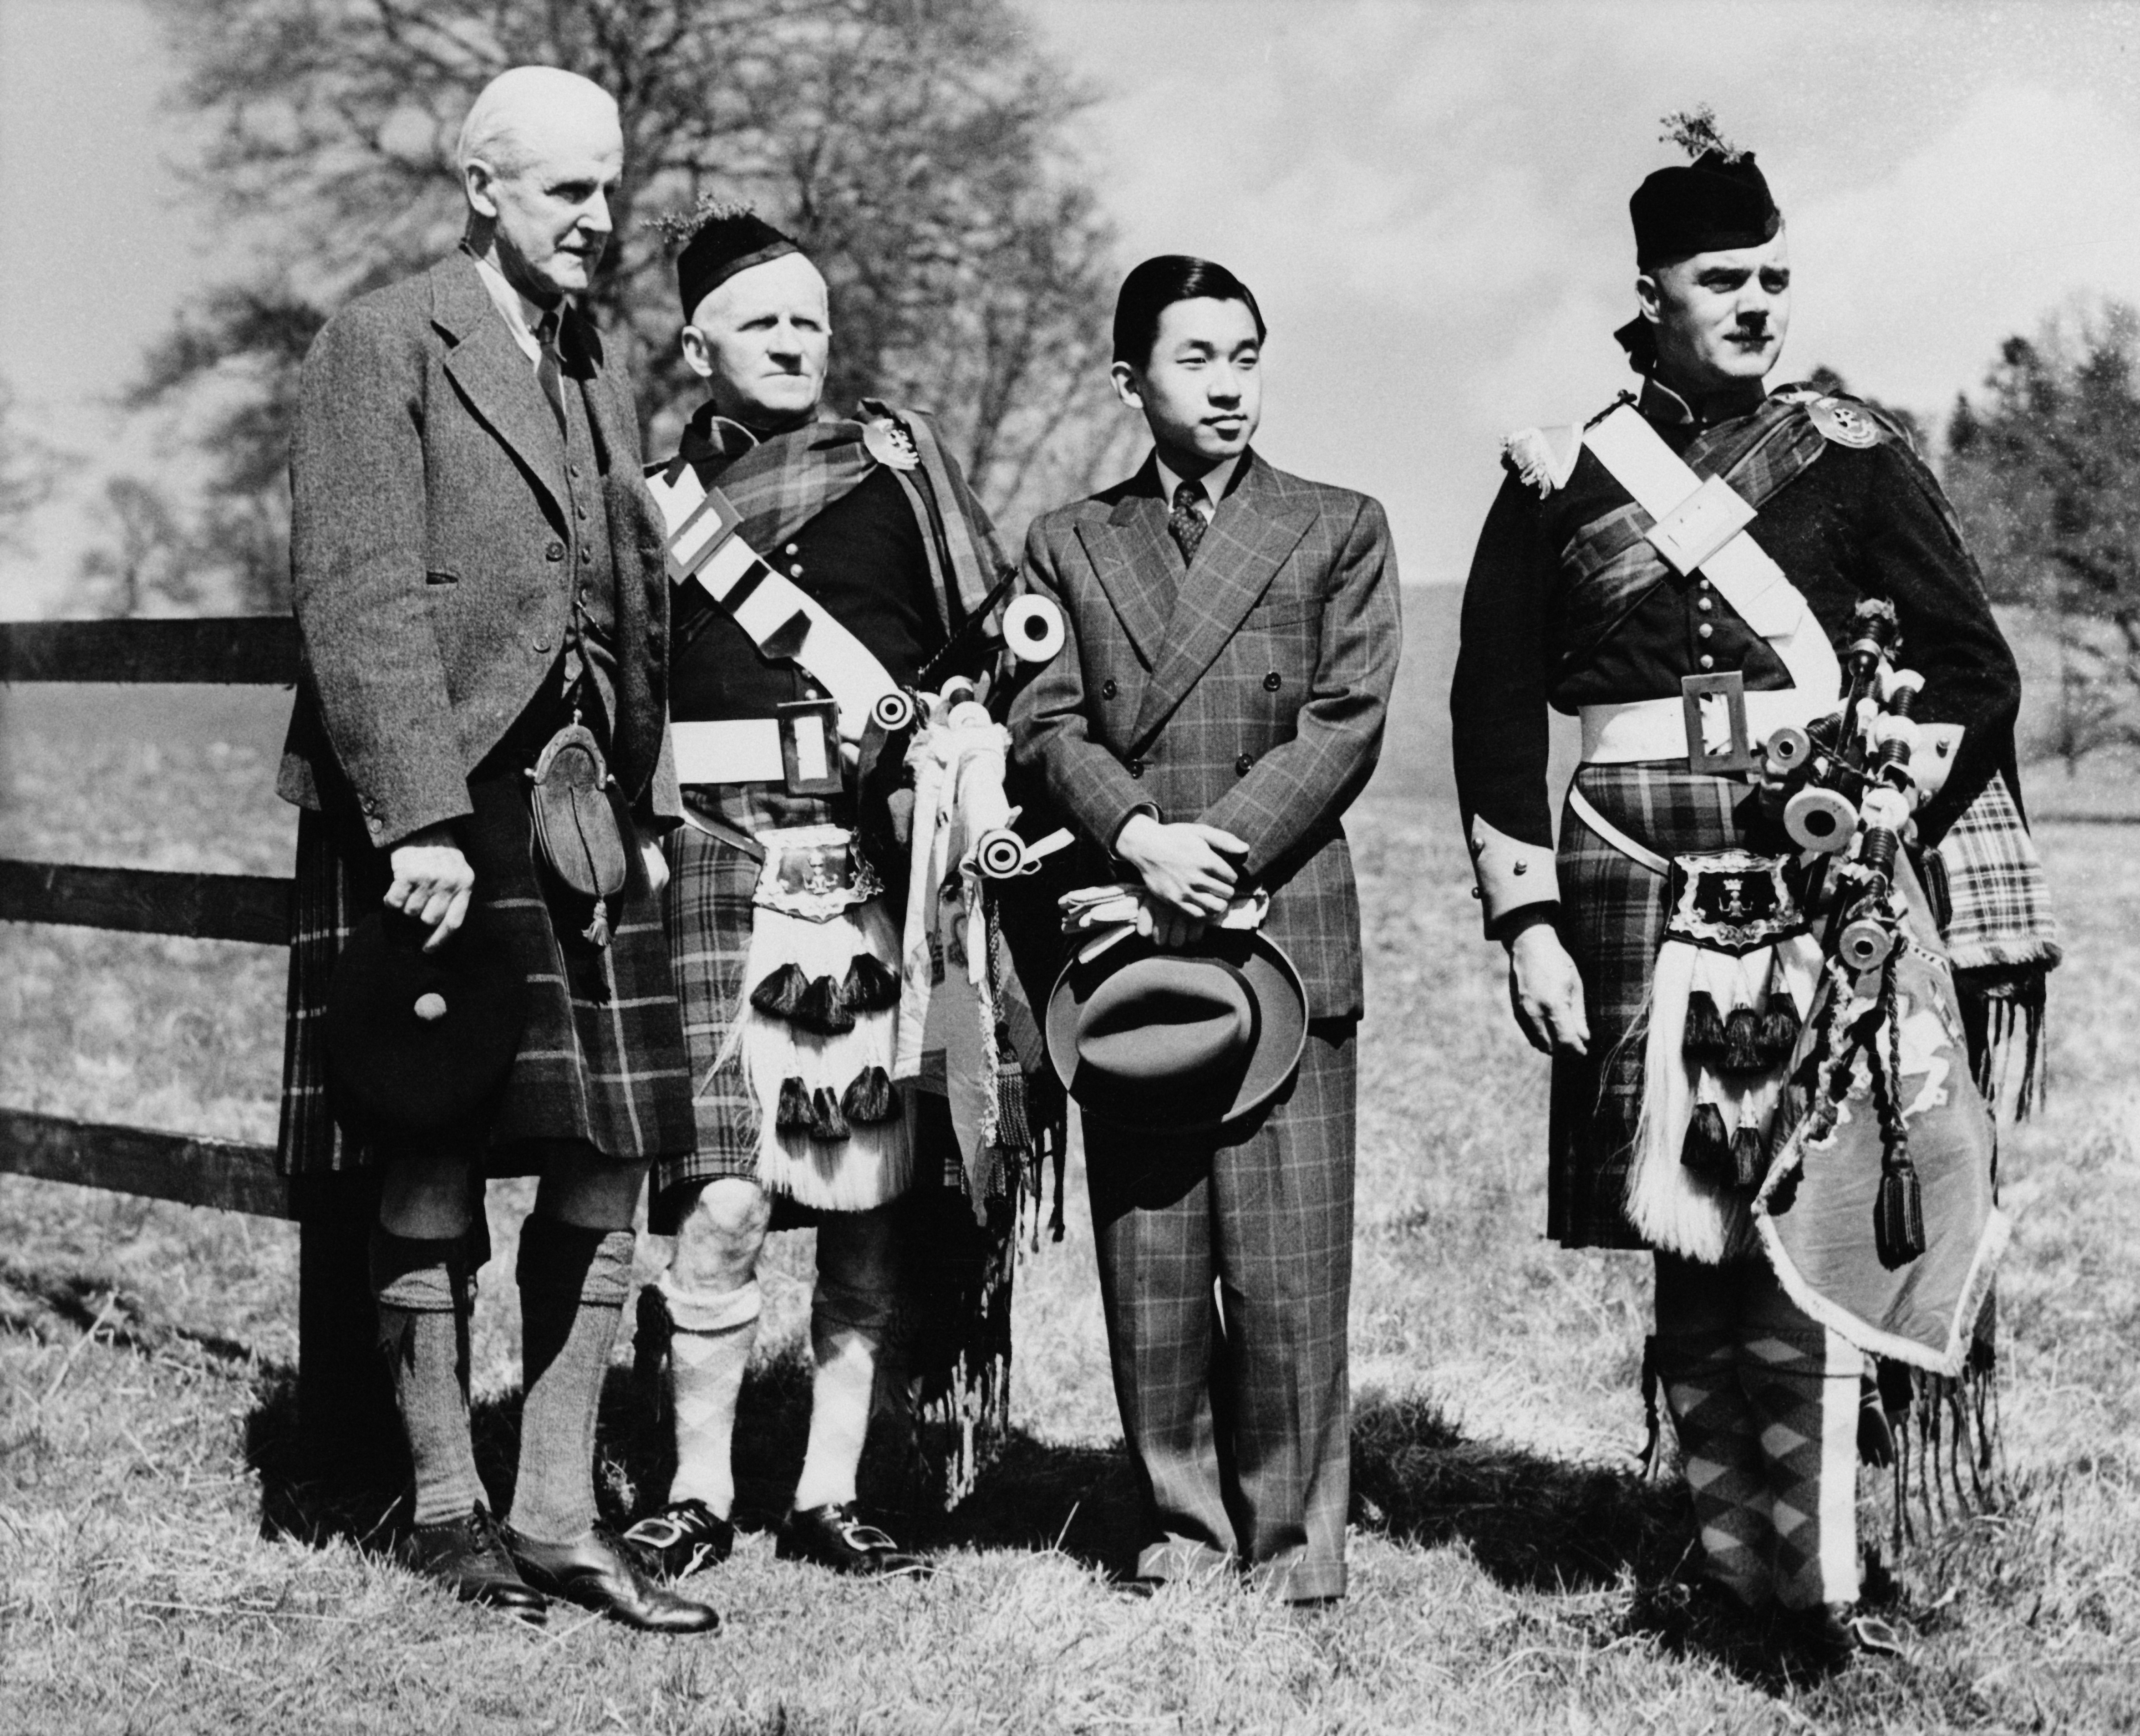 Akihito In Scotland. Crown Prince (later Emperor) of Japan, Akihito (second from right) during a visit to Blair Castle, Perthshire, Scotland, 9th May 1953. With him are James Stewart-Murray, 9th Duke of Atholl 1879 - 1957, far left), Pipe Major Peter Wilkie and piper Archibald Alves.